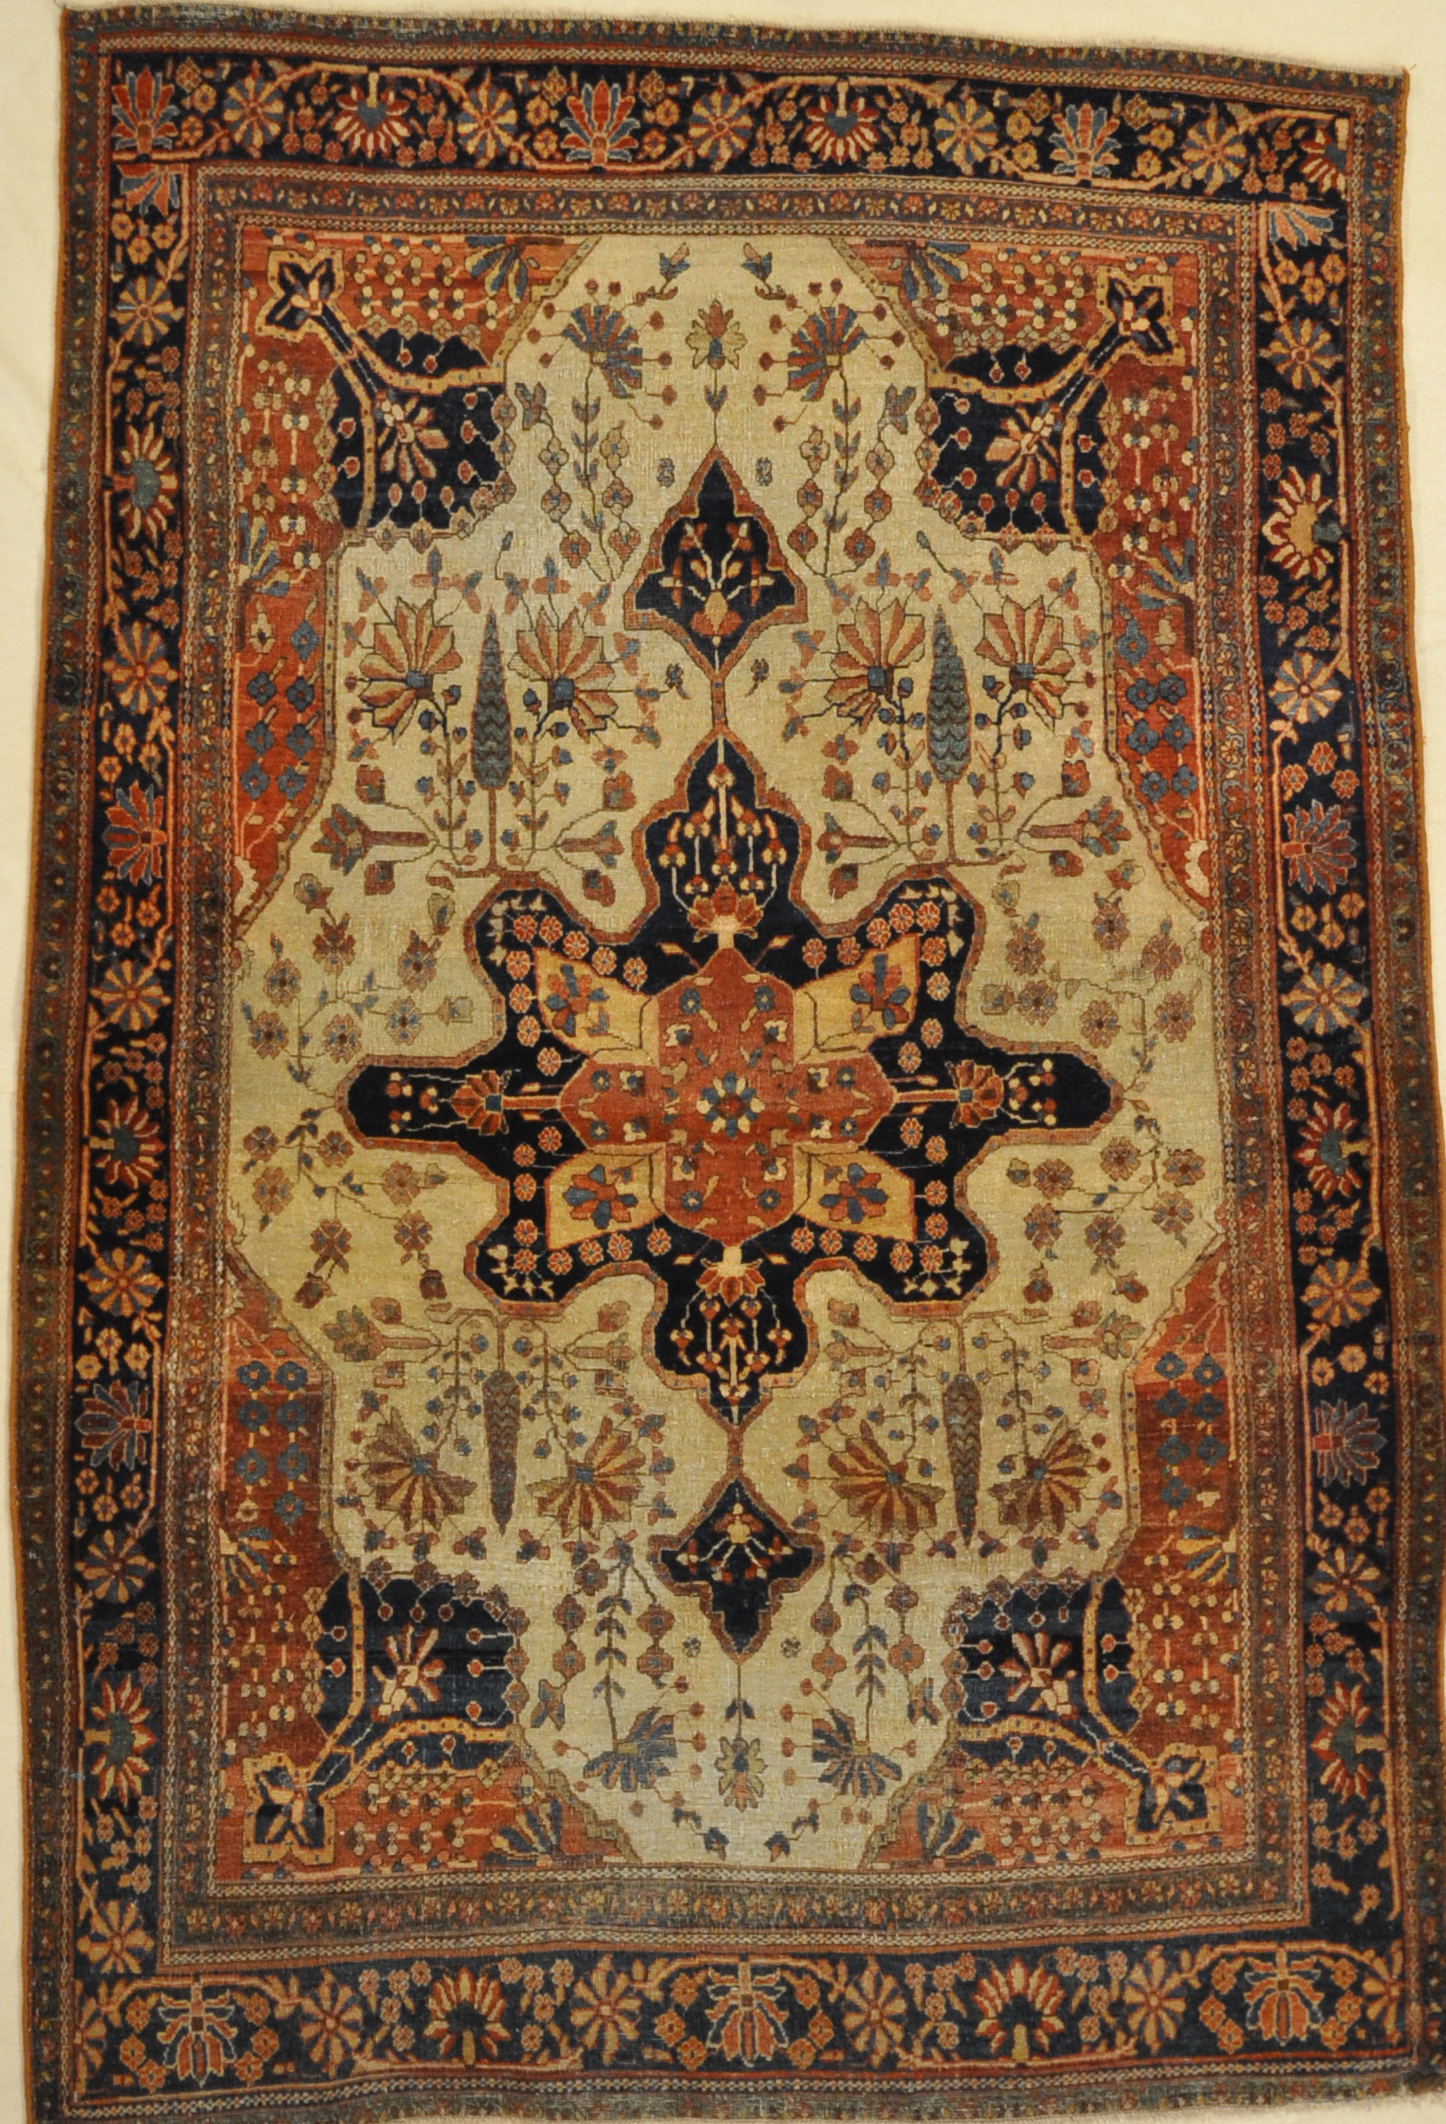 Antique Farahan Rug. A piece of woven carpet art sold by the Santa Barbara Design Center, Rugs and More in Santa Barbara, California.